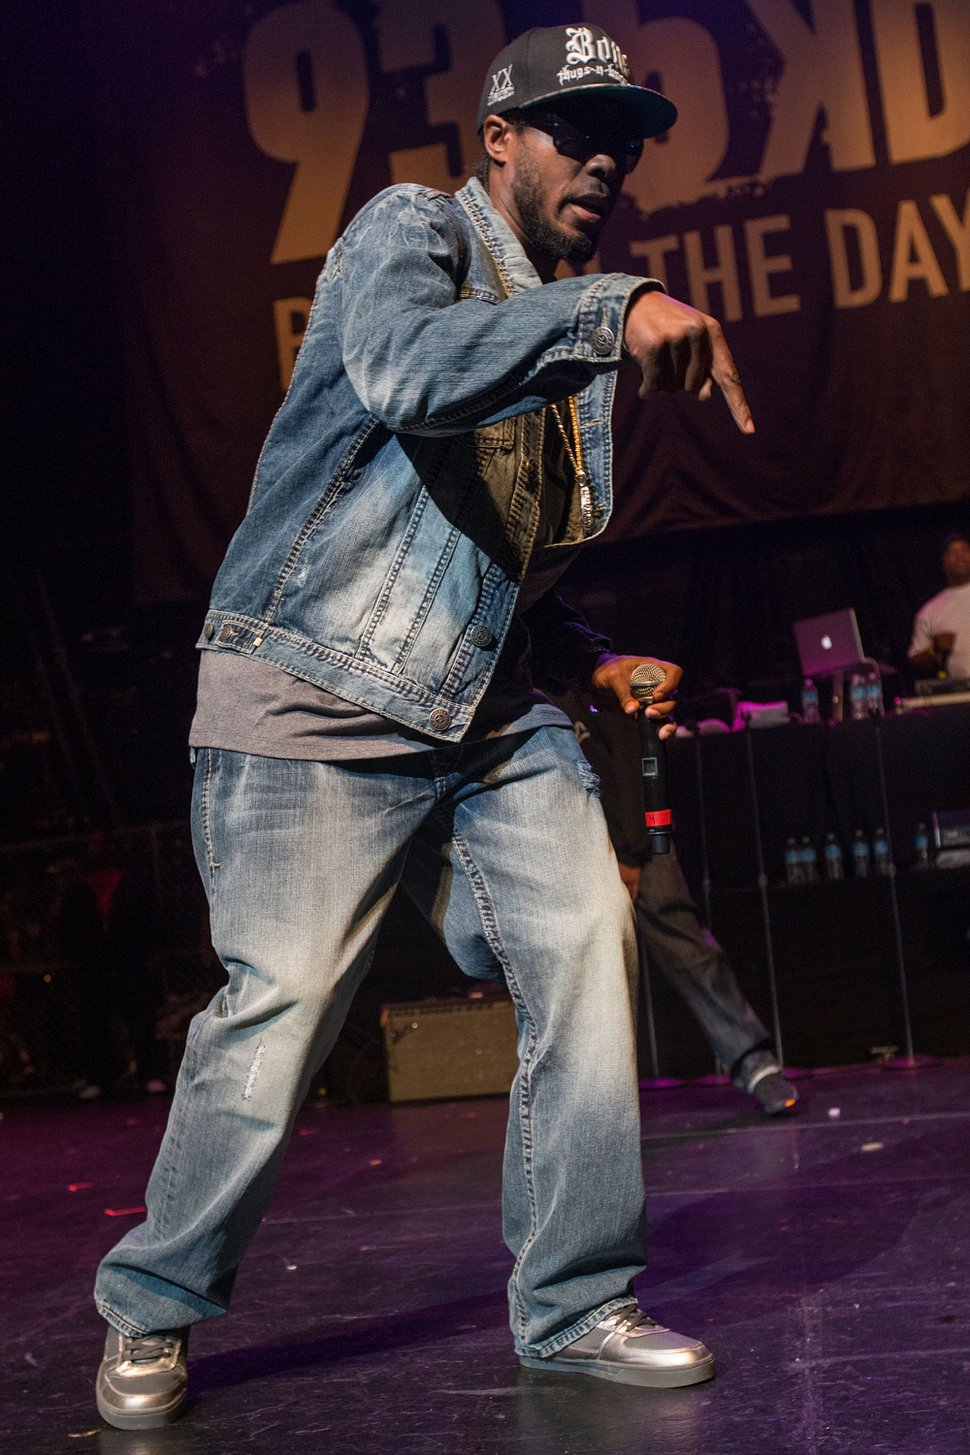 Flesh-n-Bone of Bone Thugs N Harmony performs on stage during the 93.5 K-Day Krush Groove held at the Gibson Amphitheatre on April 20, 2013 in Universal City, California. (Photo by Paul A. Hebert/Invision/AP)